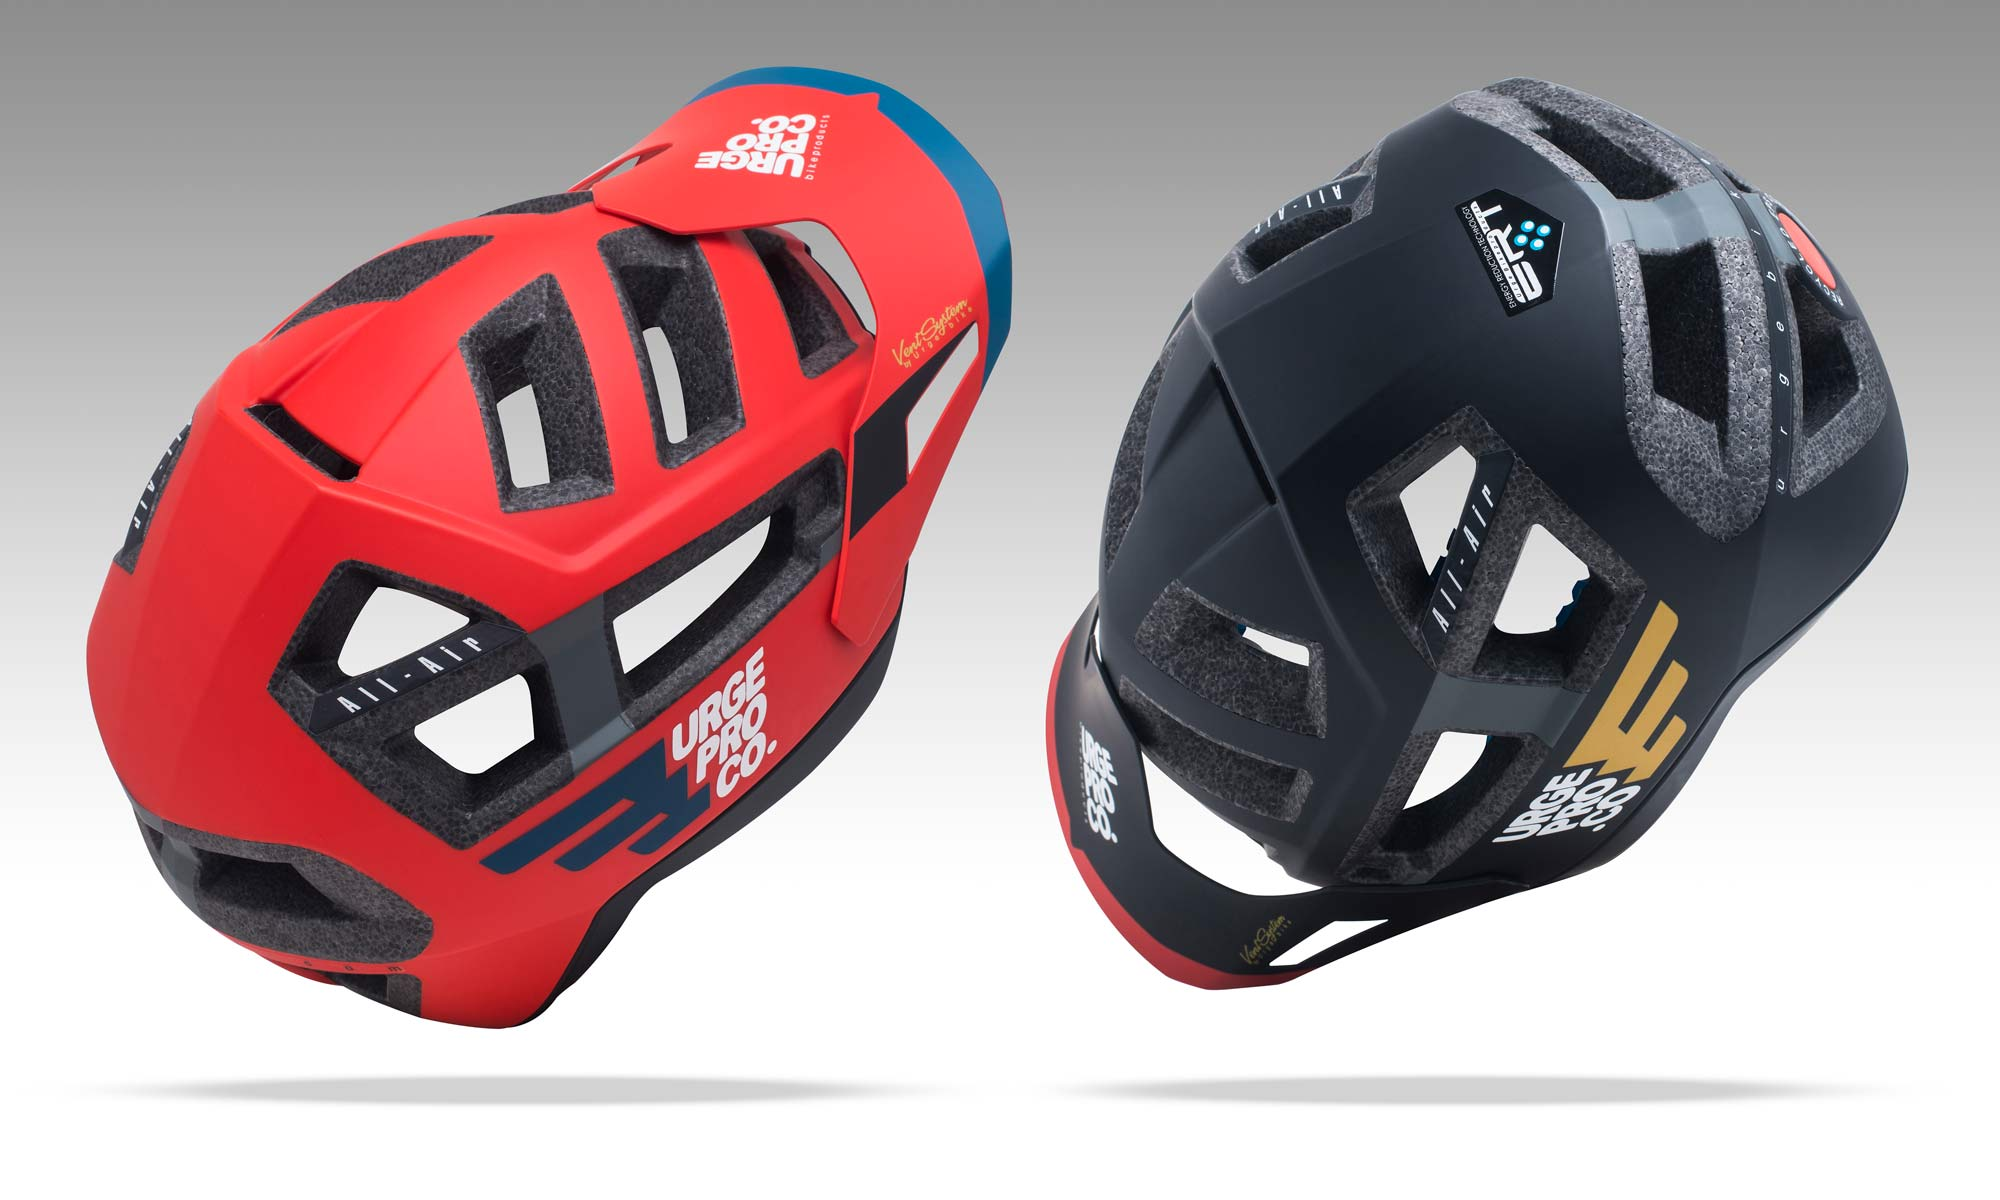 Urge All-Air all-mountain bike helmet, affordable extra ERT impact rotation reduction protection tech